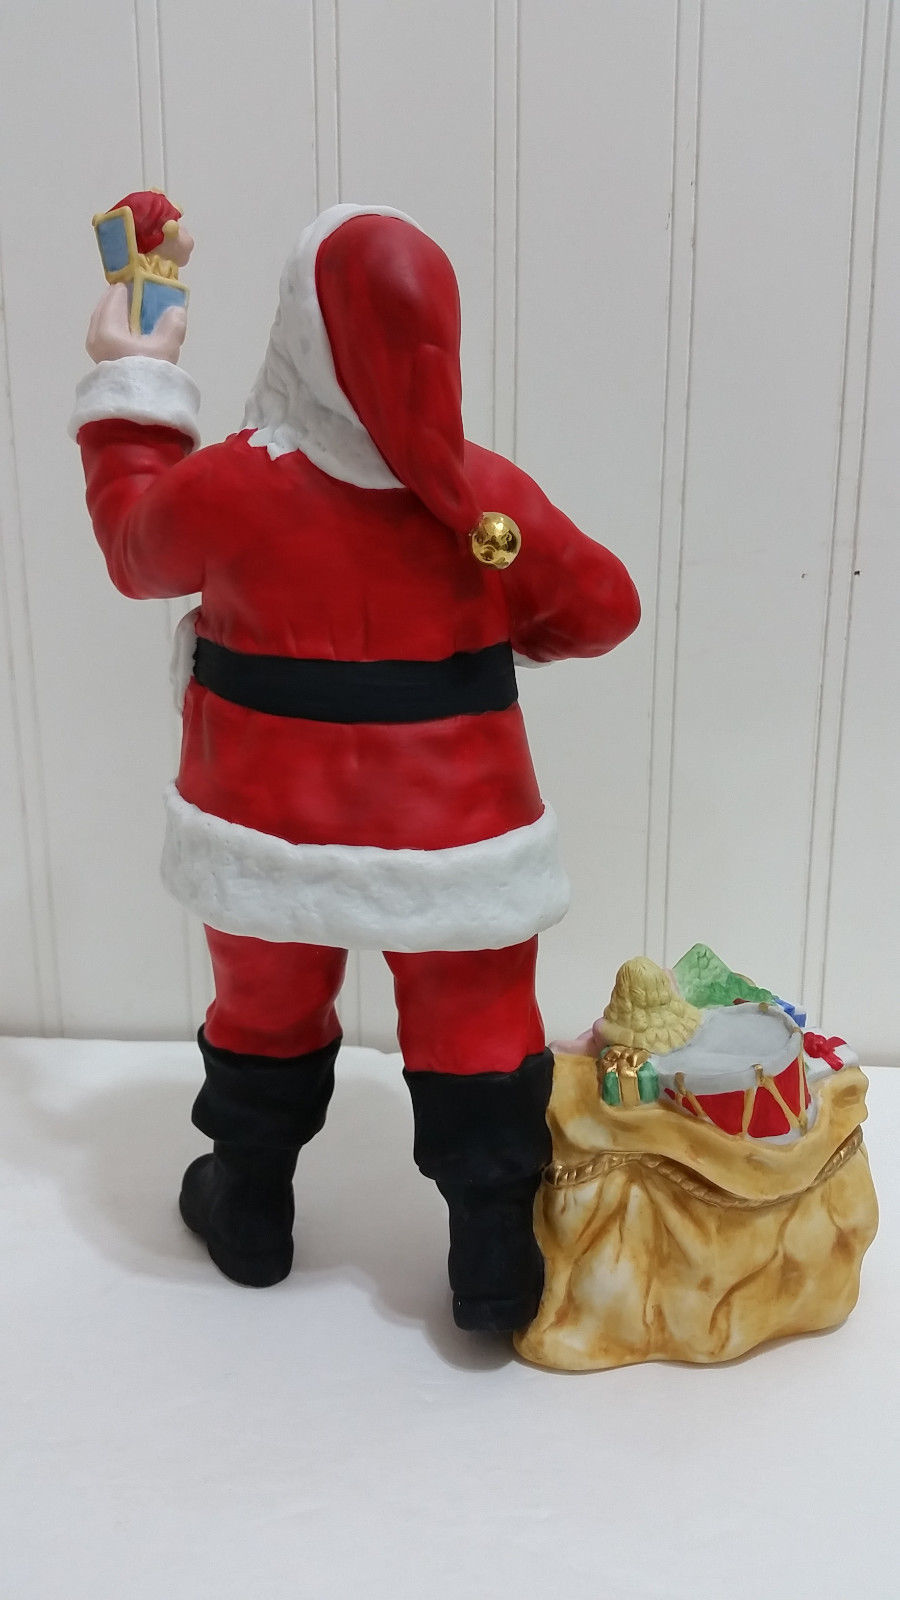 1990 LENOX Santa Claus Porcelain Figurine w/Box +COA Father Christmas Gifts Gold